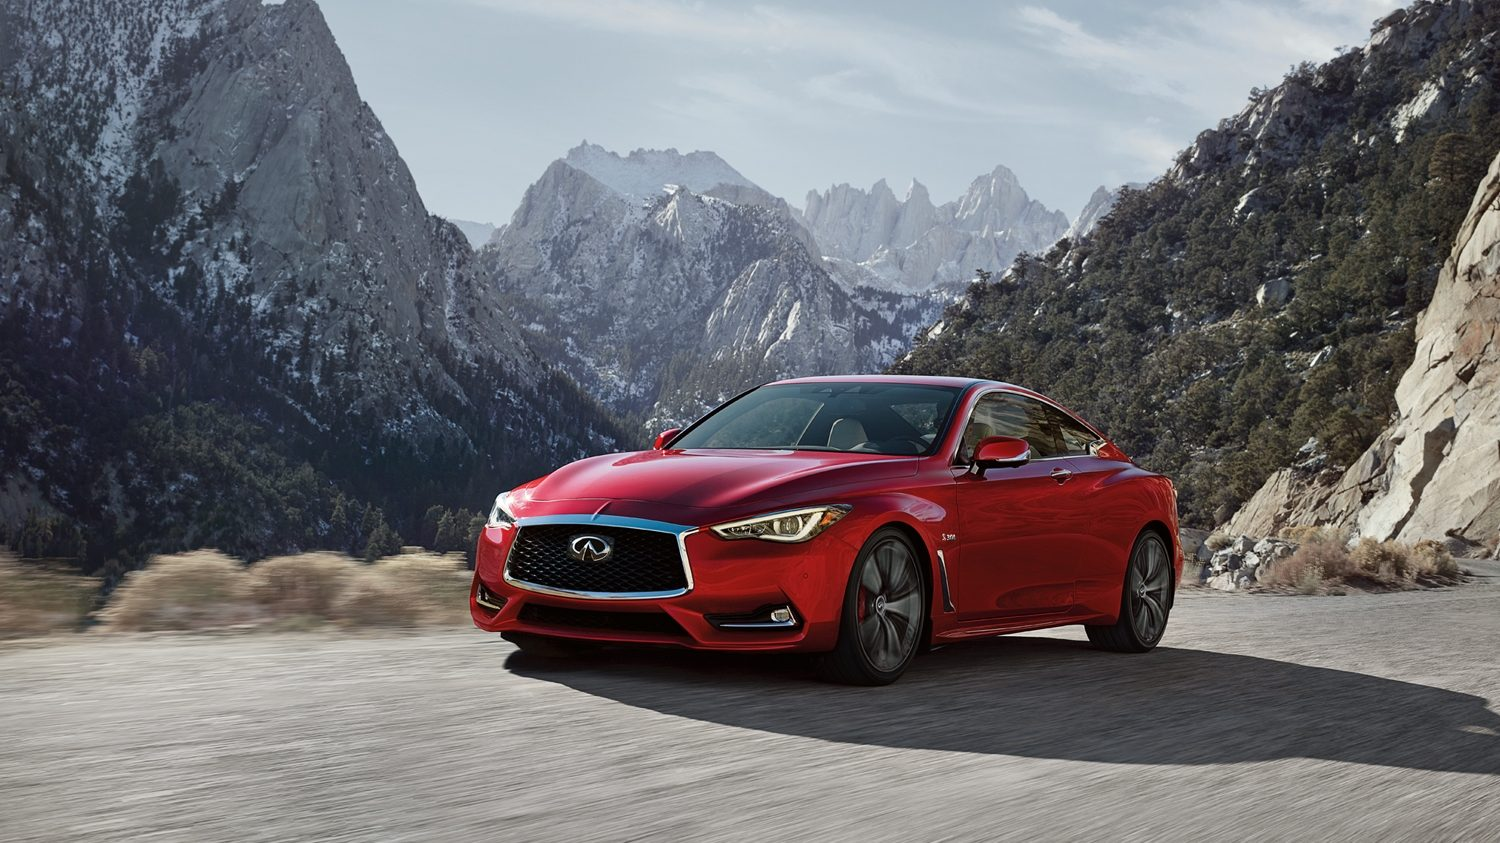 INFINITI Q60 Red Sports Coupe Mountain Road